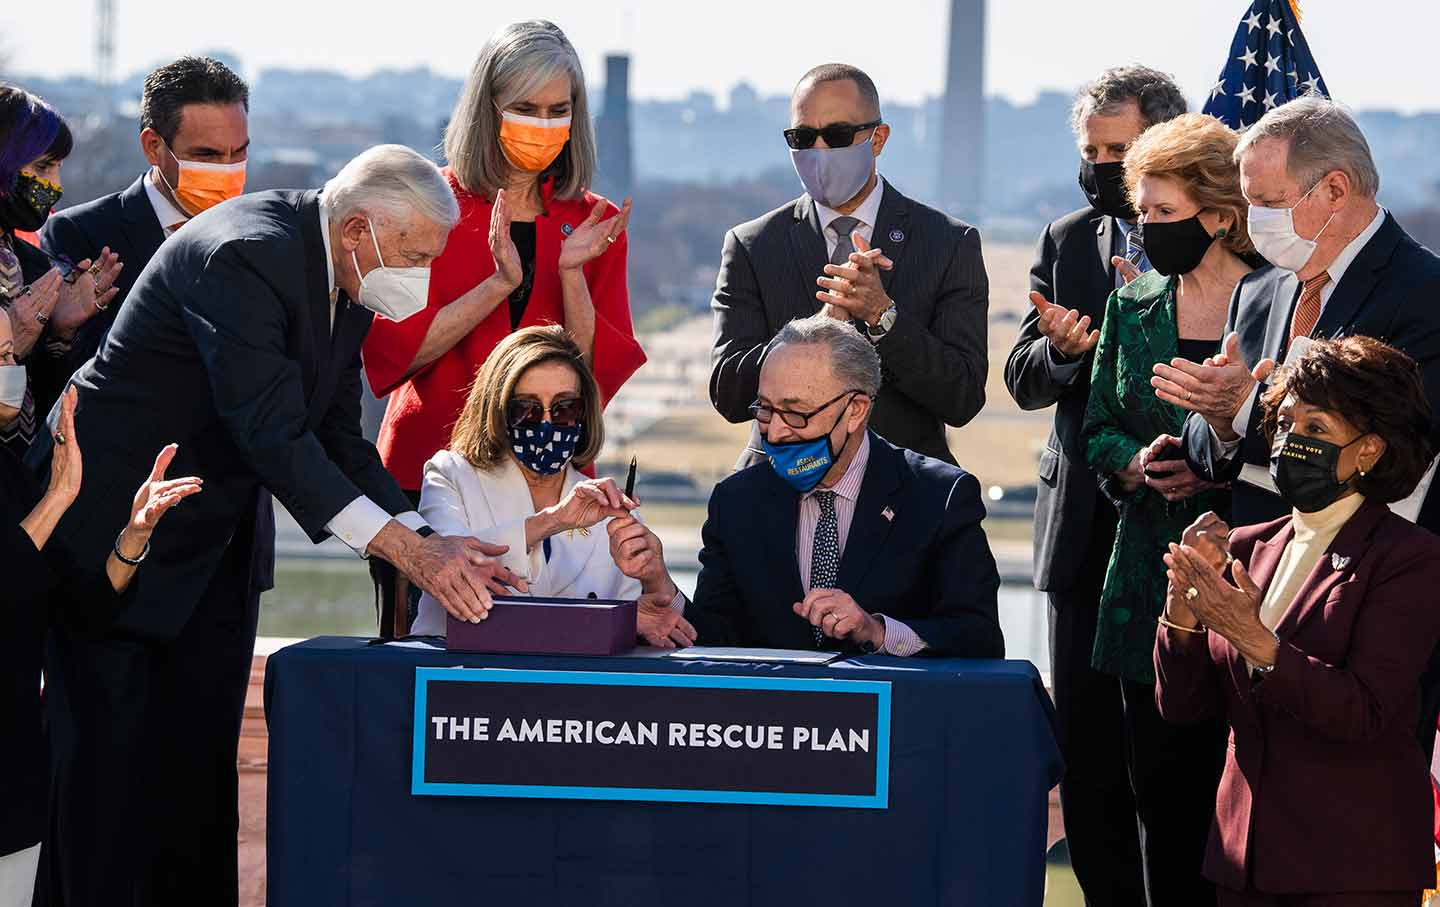 Speaker Nancy Pelosi and Majority Leader Chuck Schumer sign the American Rescue Plan Act.